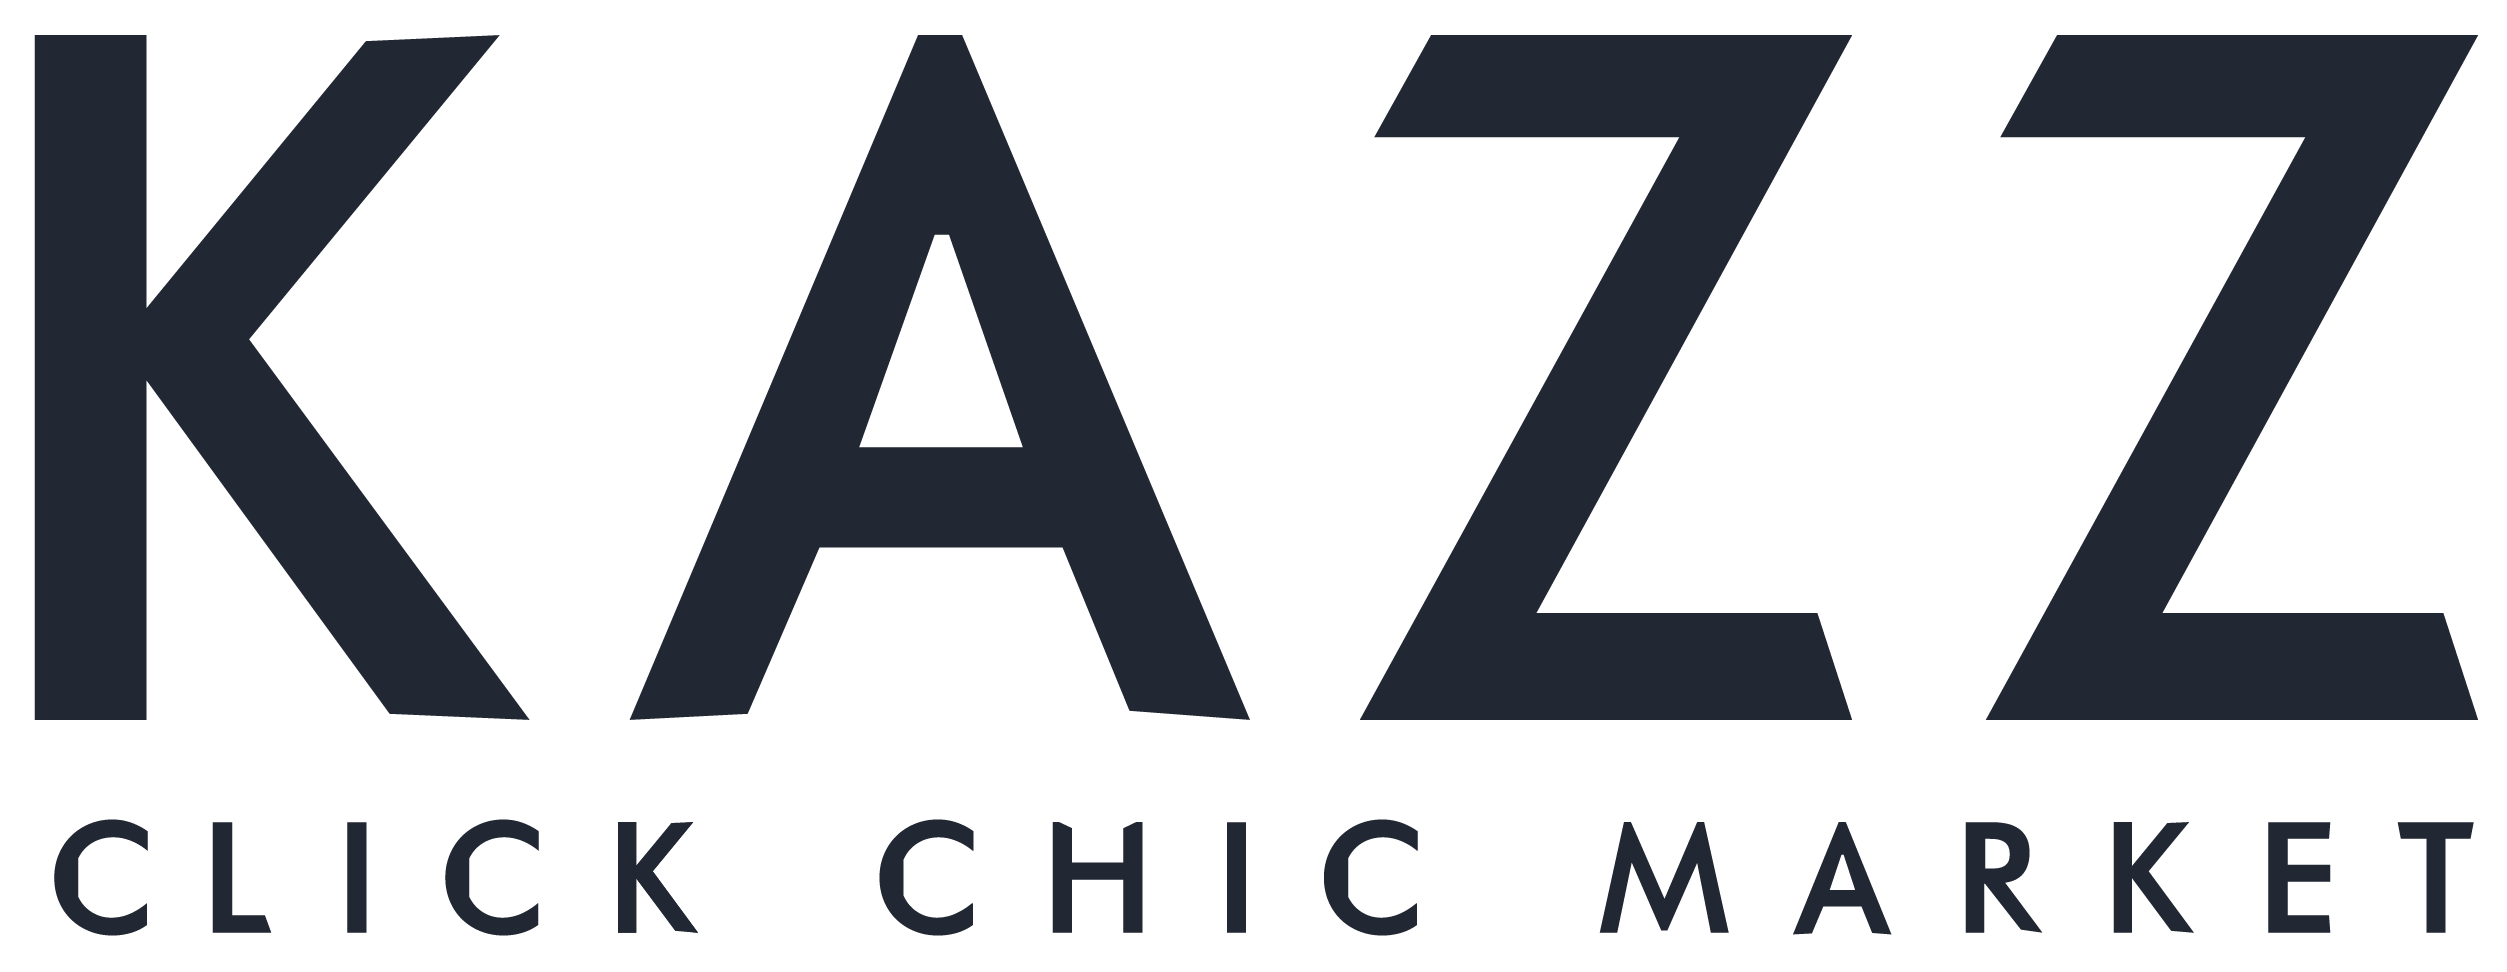 KAZZ MARKET